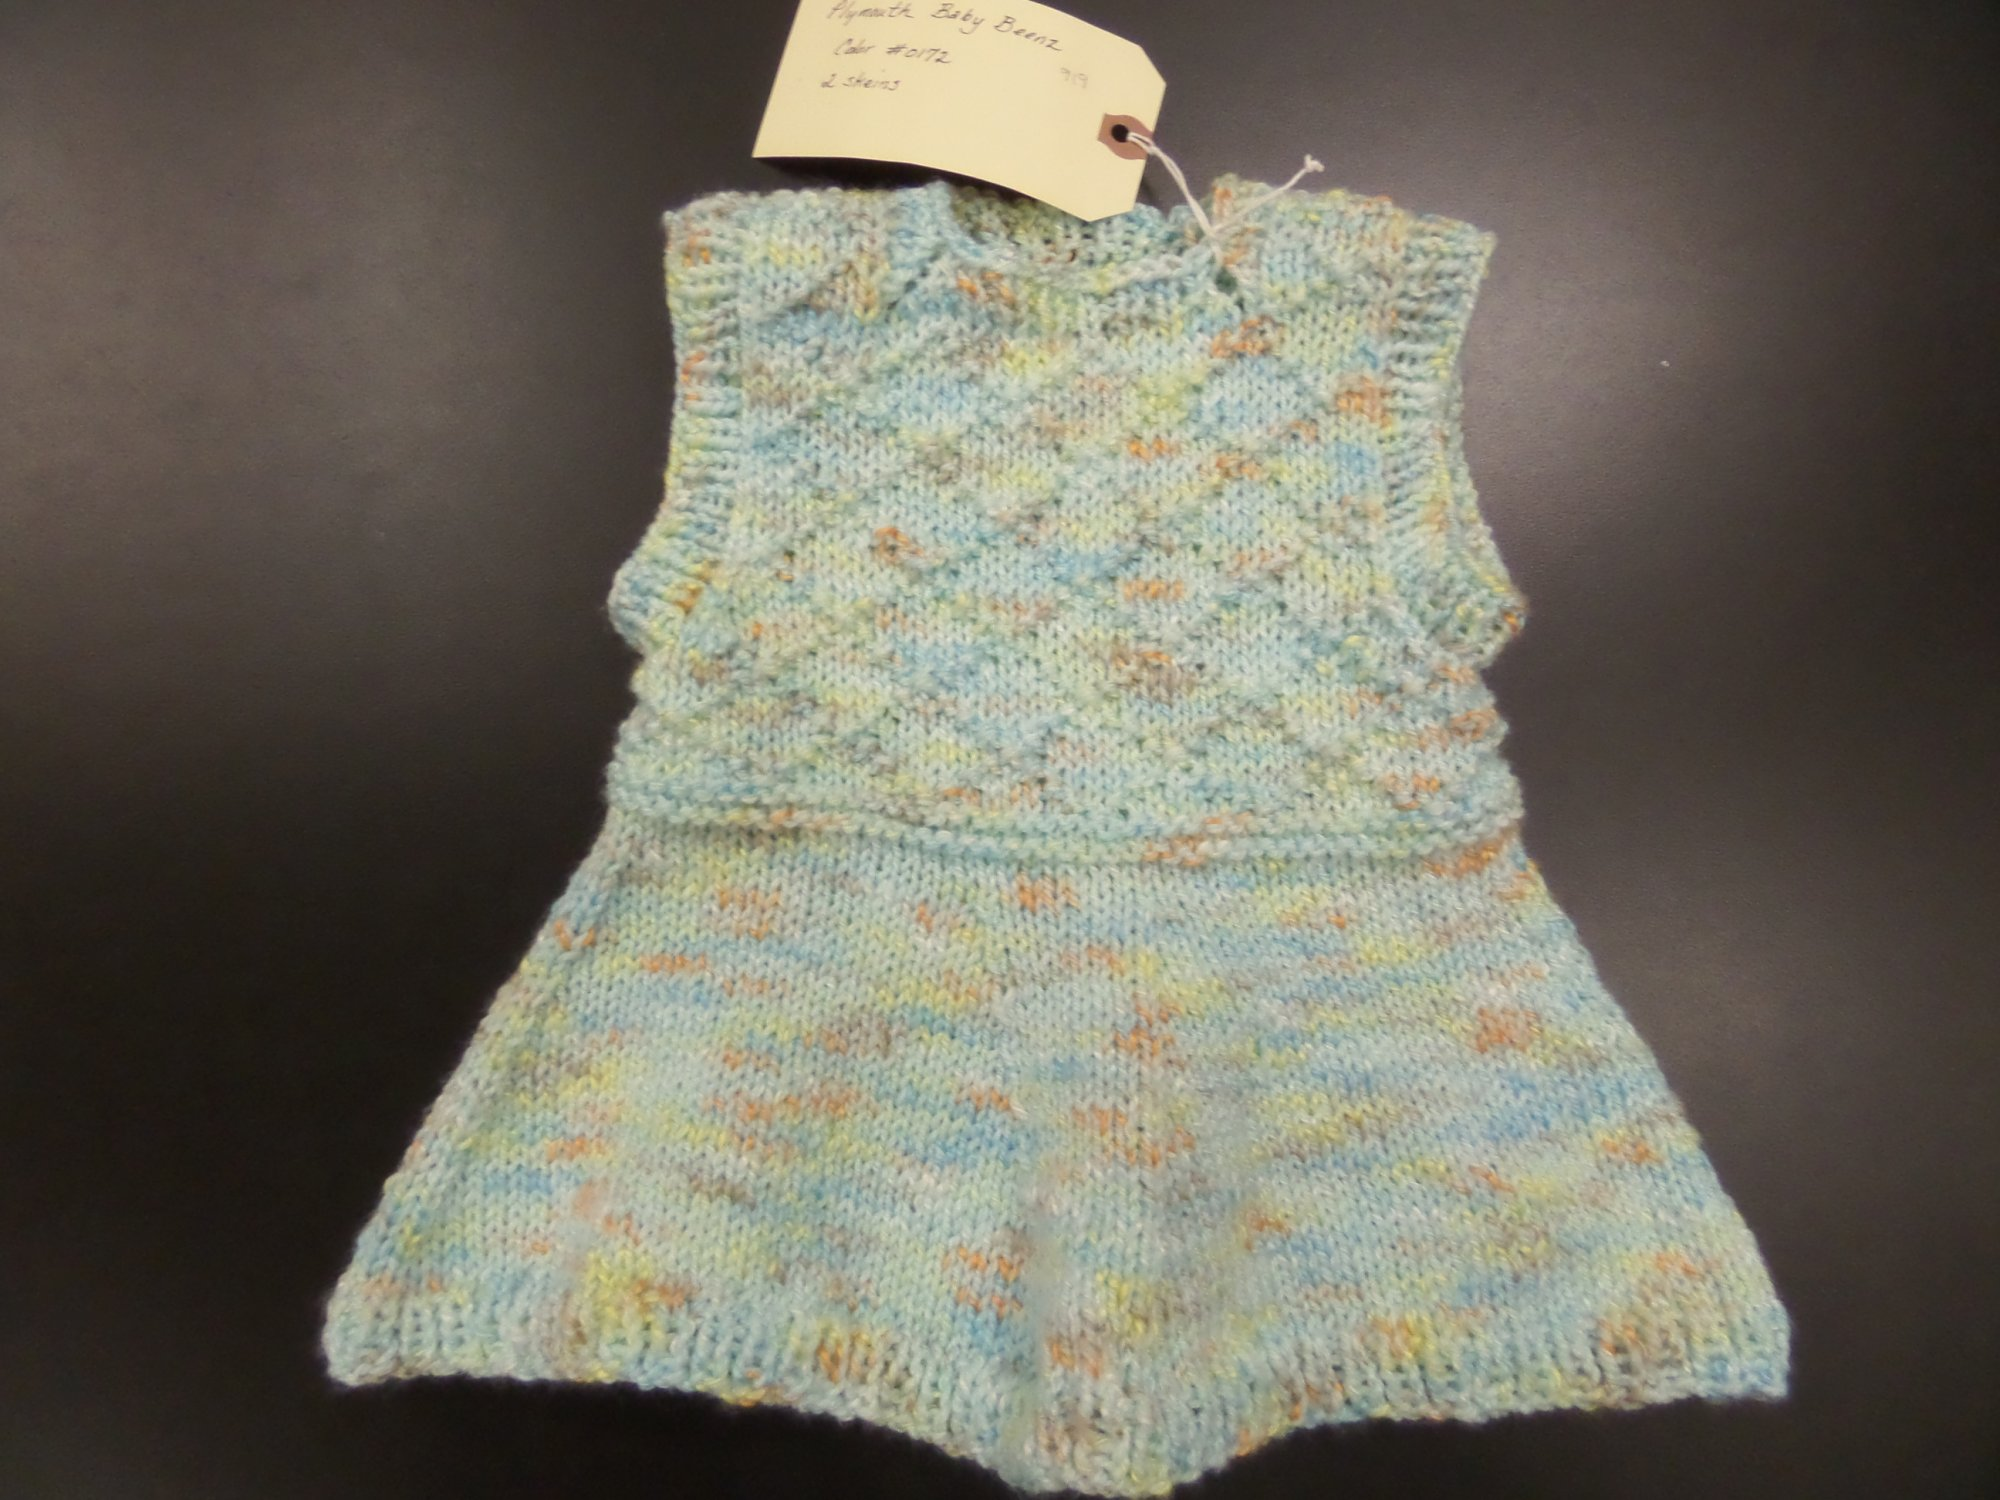 Girl's Sleeveless Tunic model in Baby Beenz from Plymouth